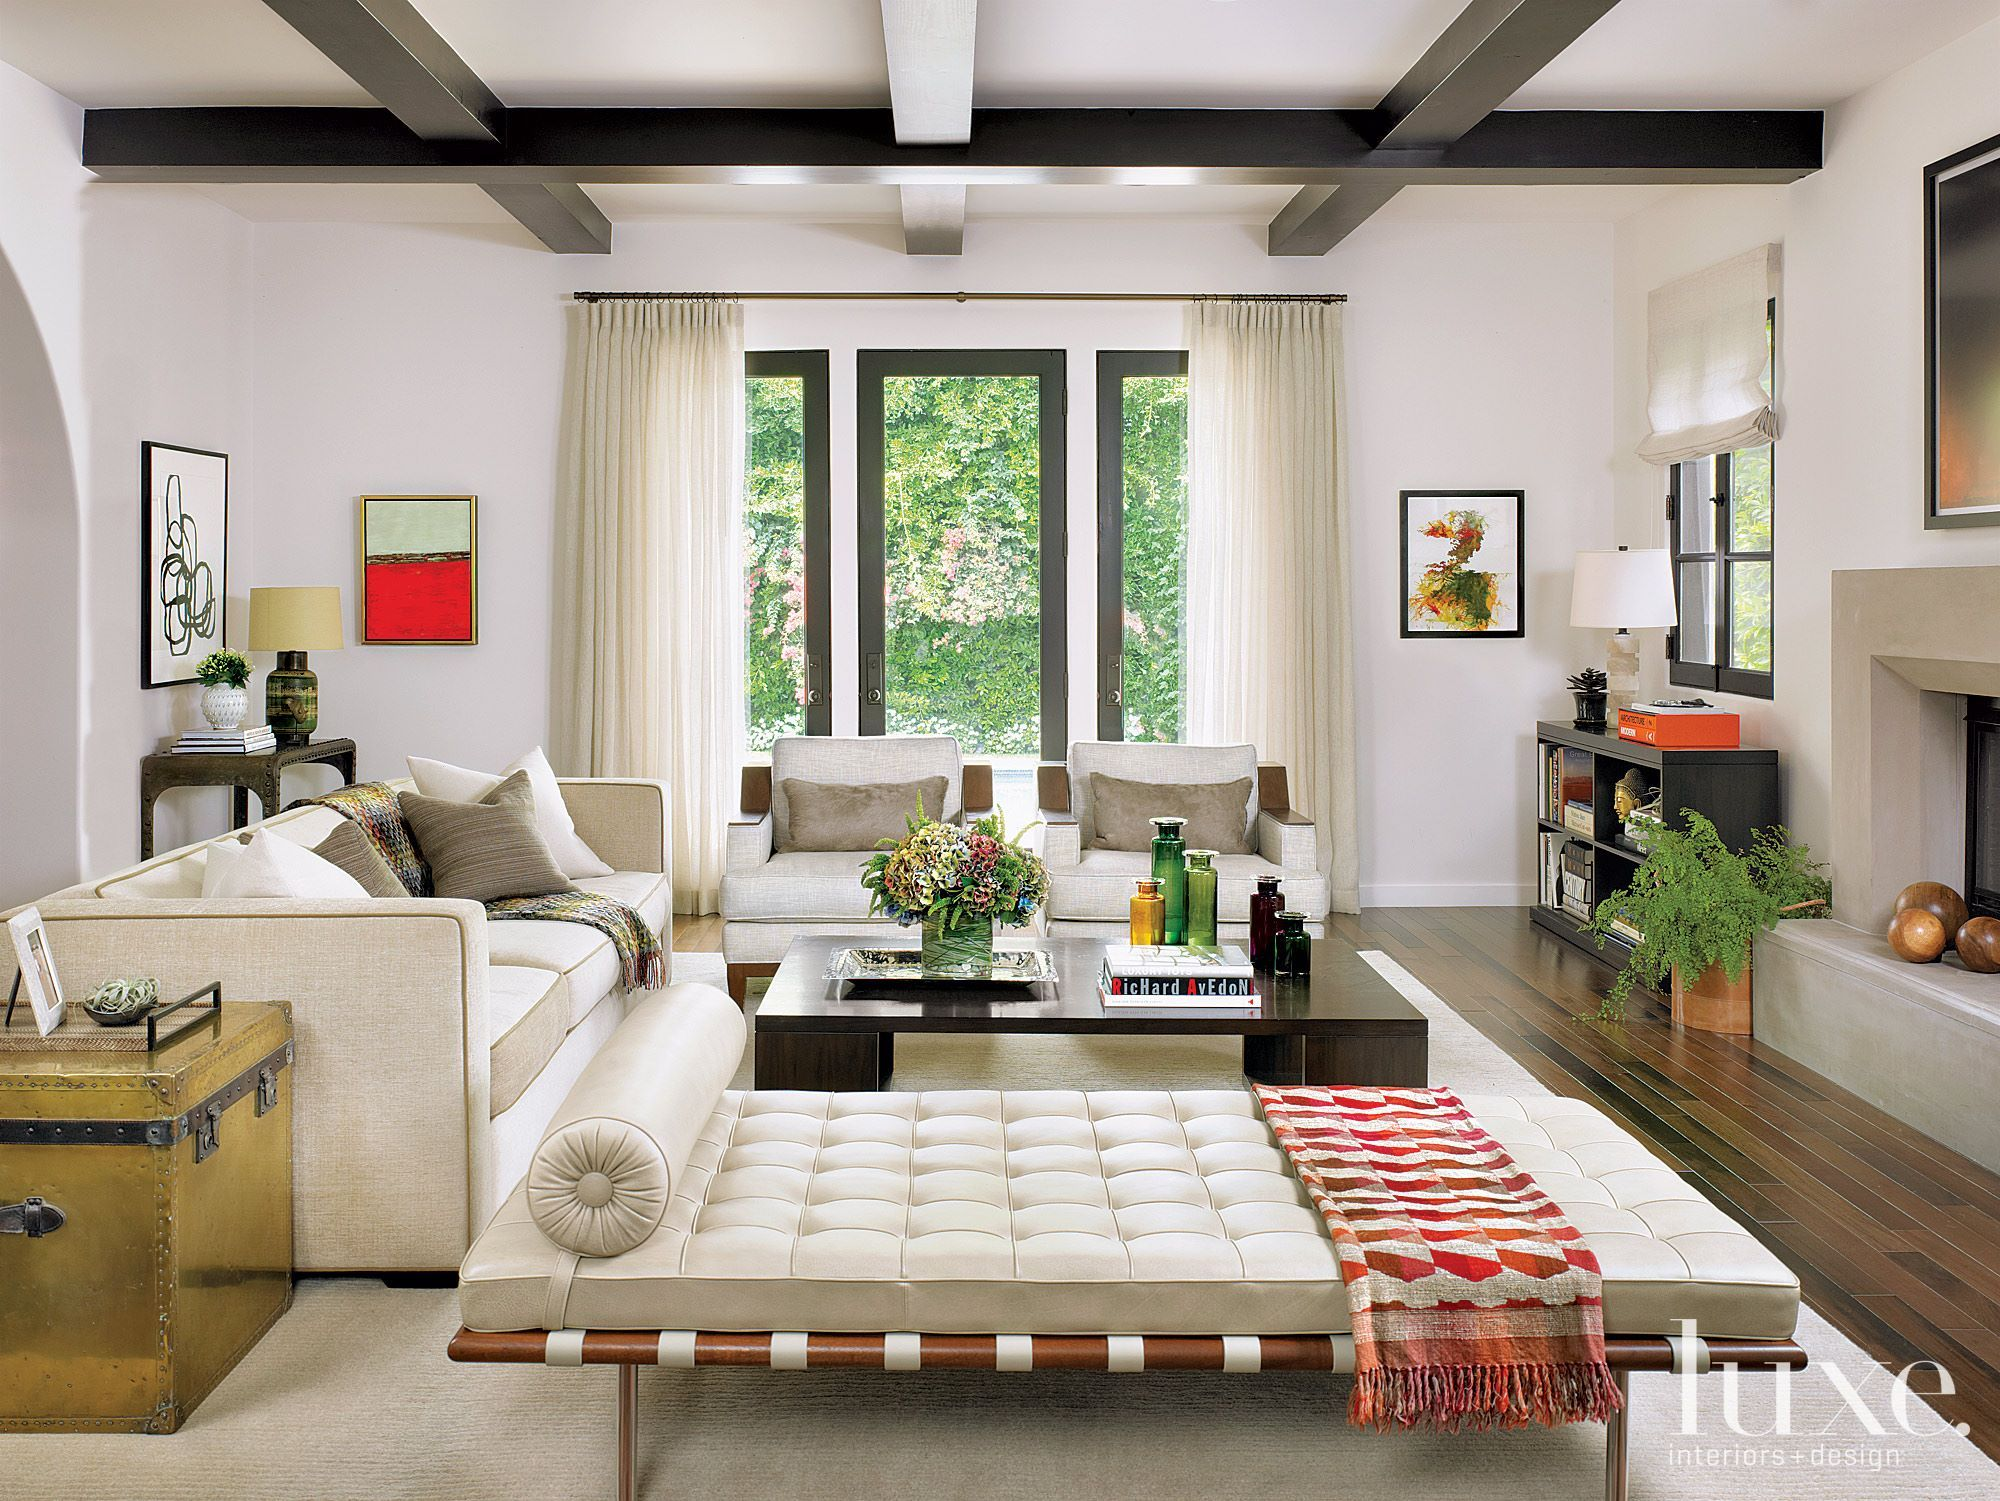 Luxe magazine spanish bungalow living rooms bungalow - Contemporary colonial interior design ...